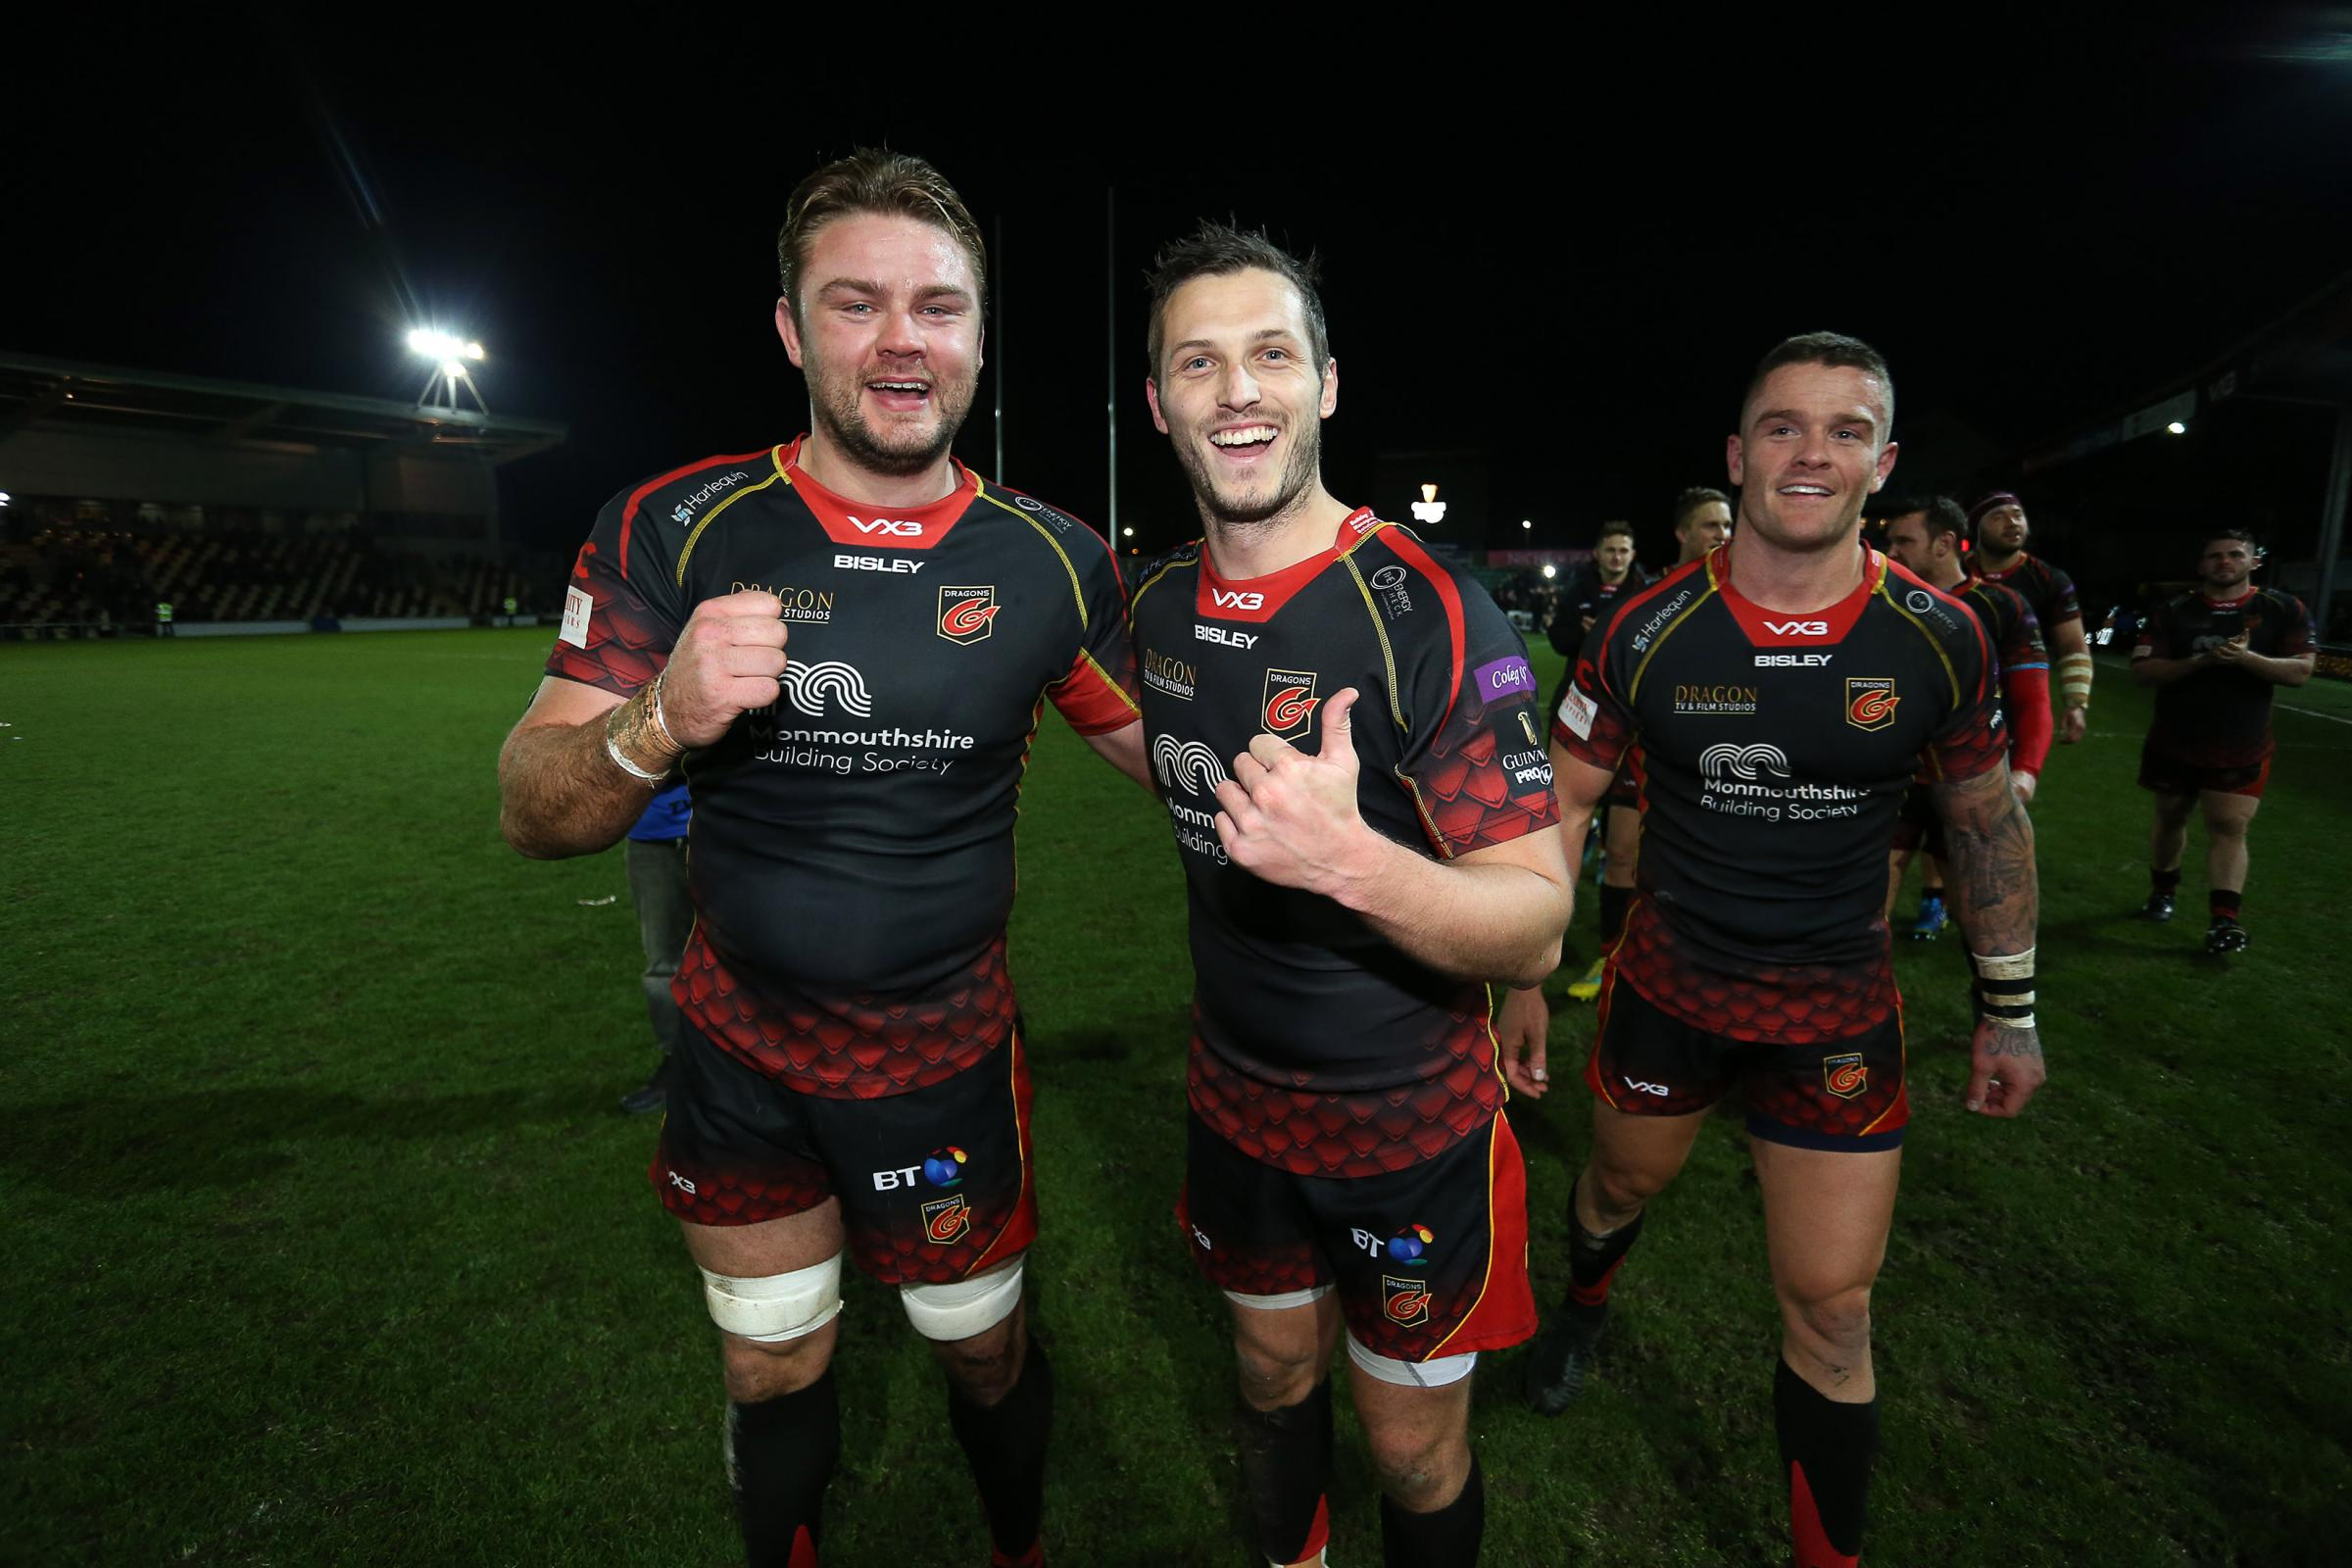 Dragons get green light for contracts as all four regions confirmed for next season